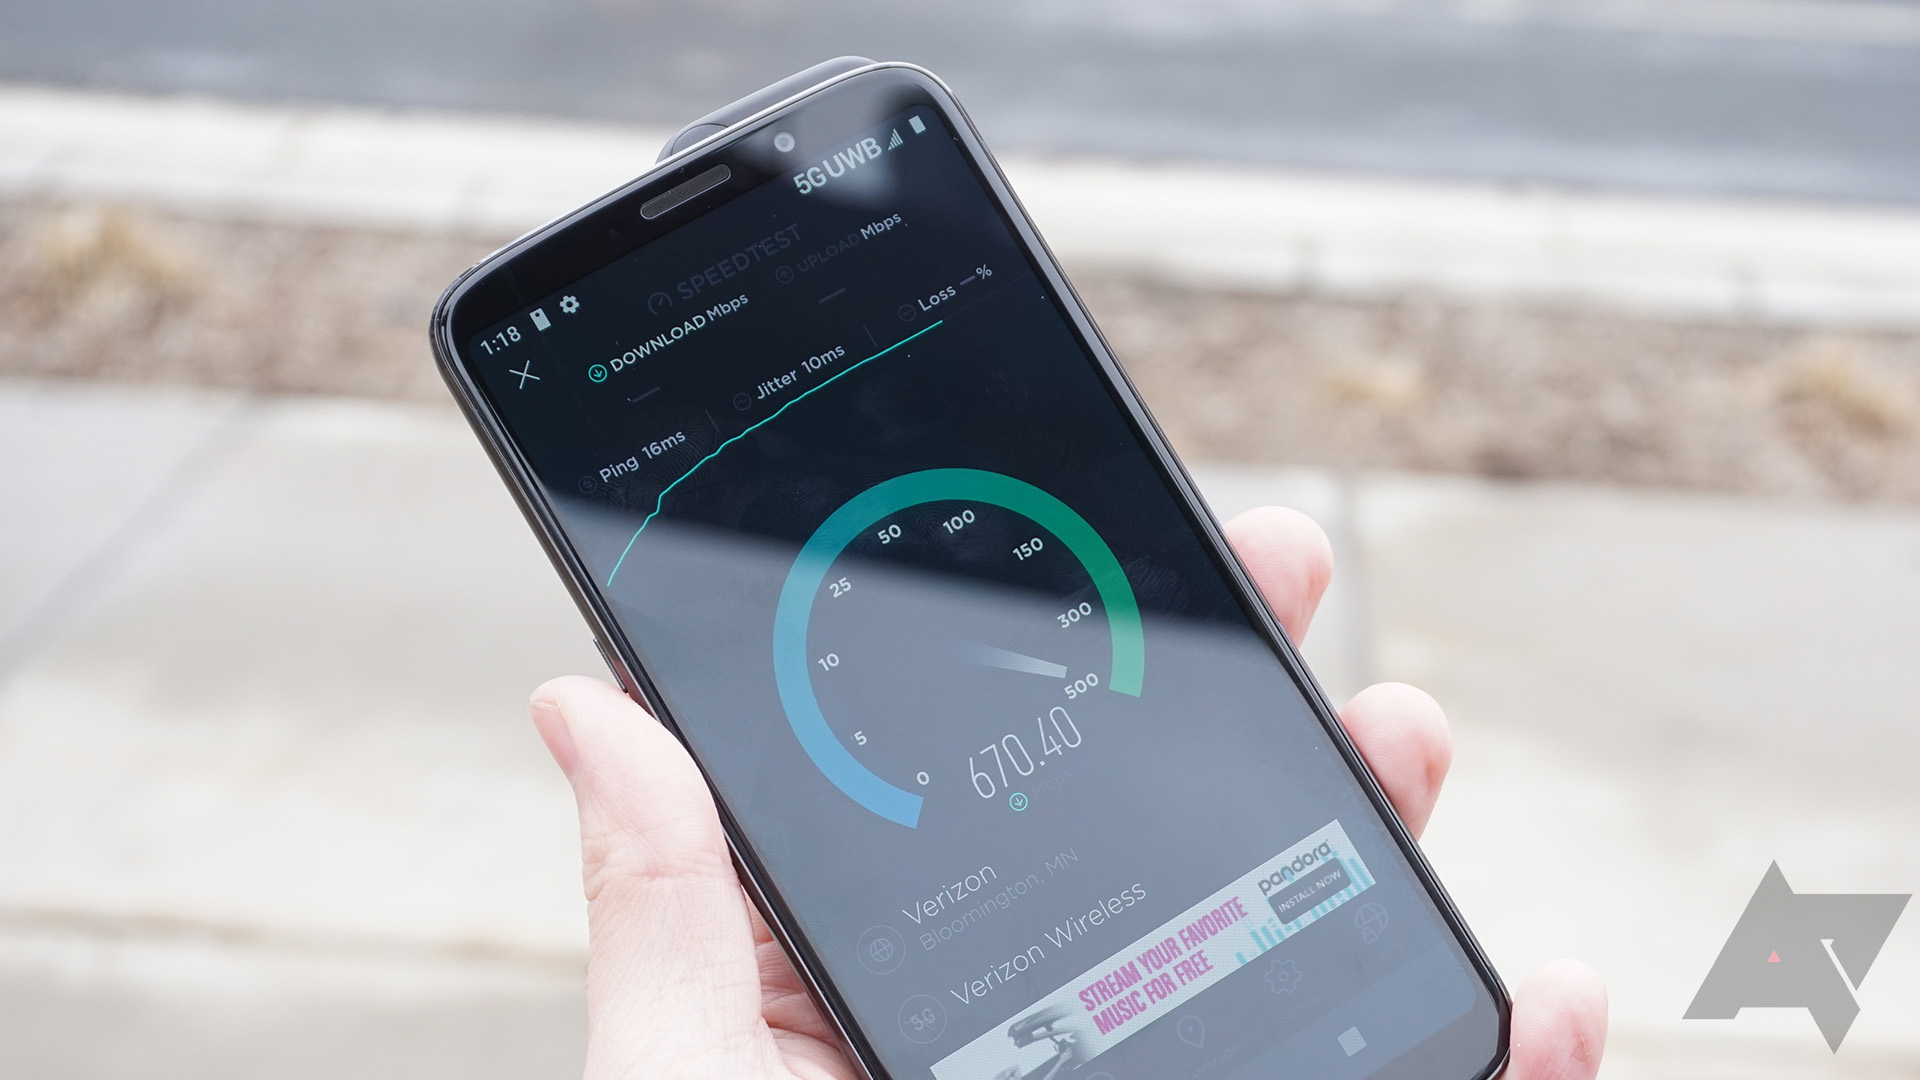 Ookla Speedtest adds 1 Gb option for accurately measuring 5G